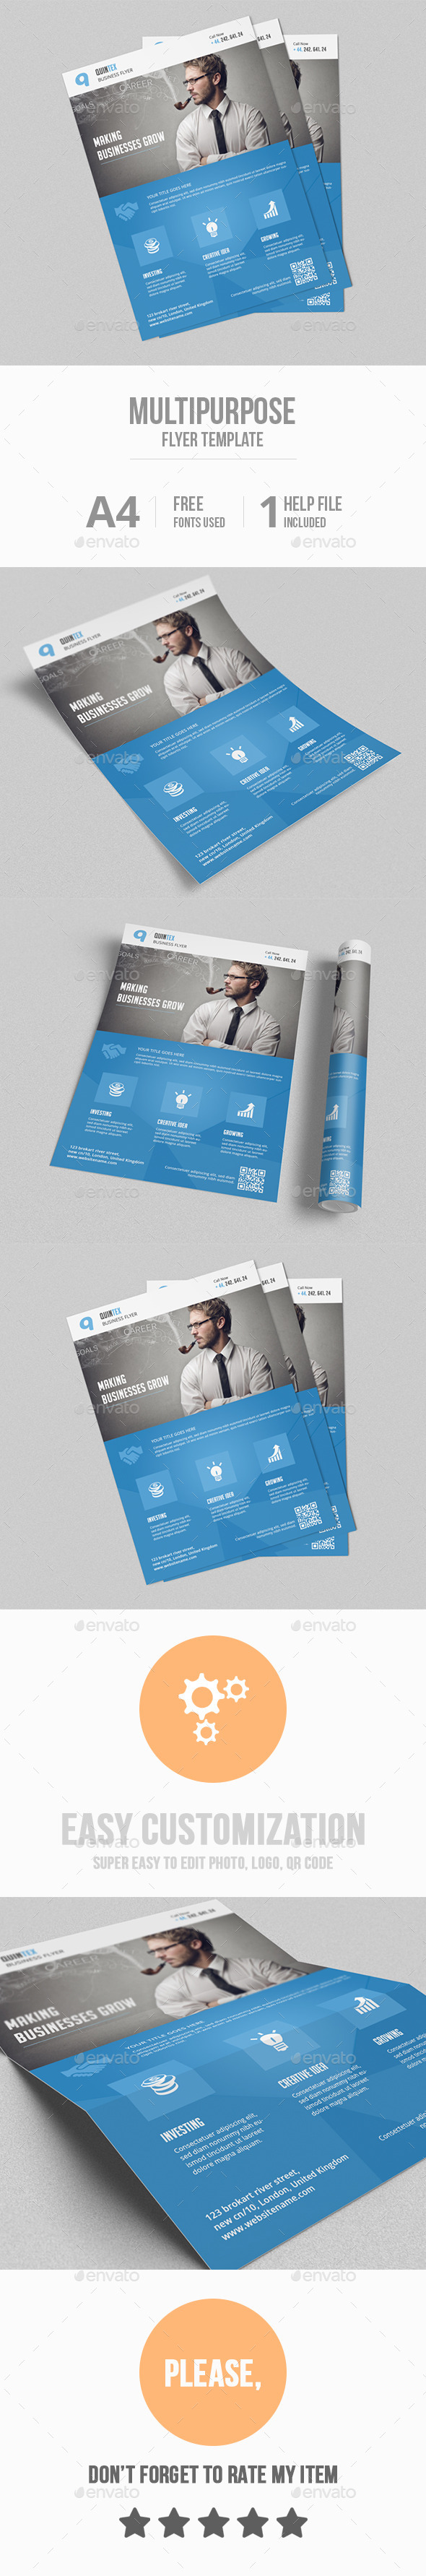 GraphicRiver Multipurpose Flyer Template 10327673